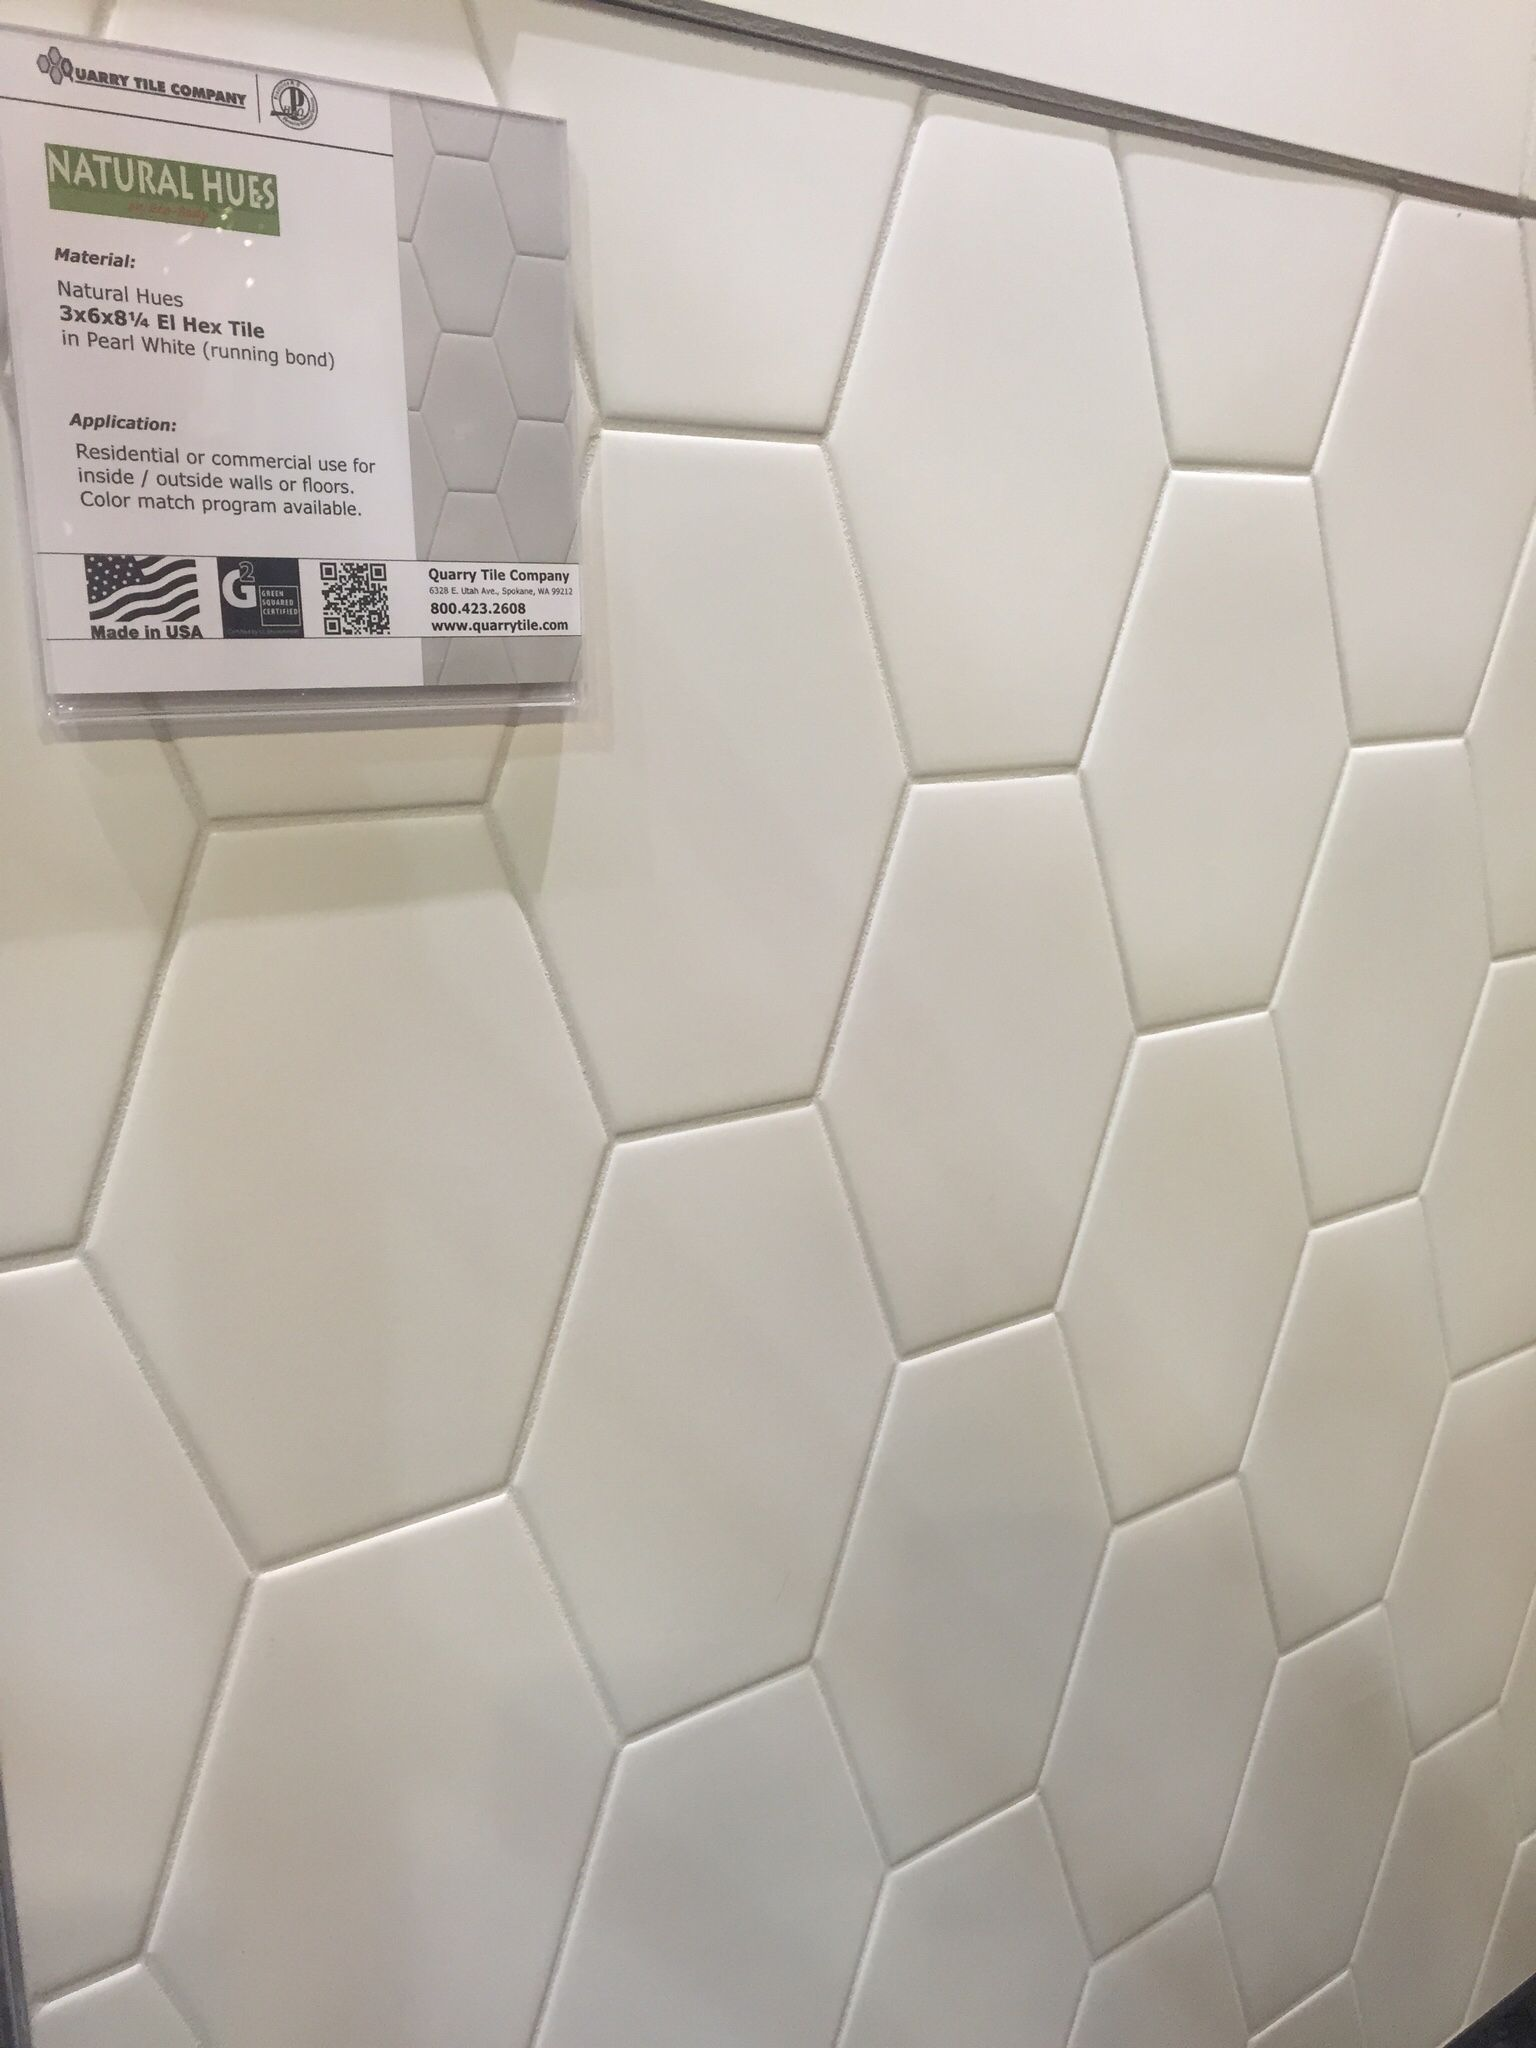 Natural Hues Xx El Hex Daltile Elongated Hexagon Tile White - Daltile dayton ohio